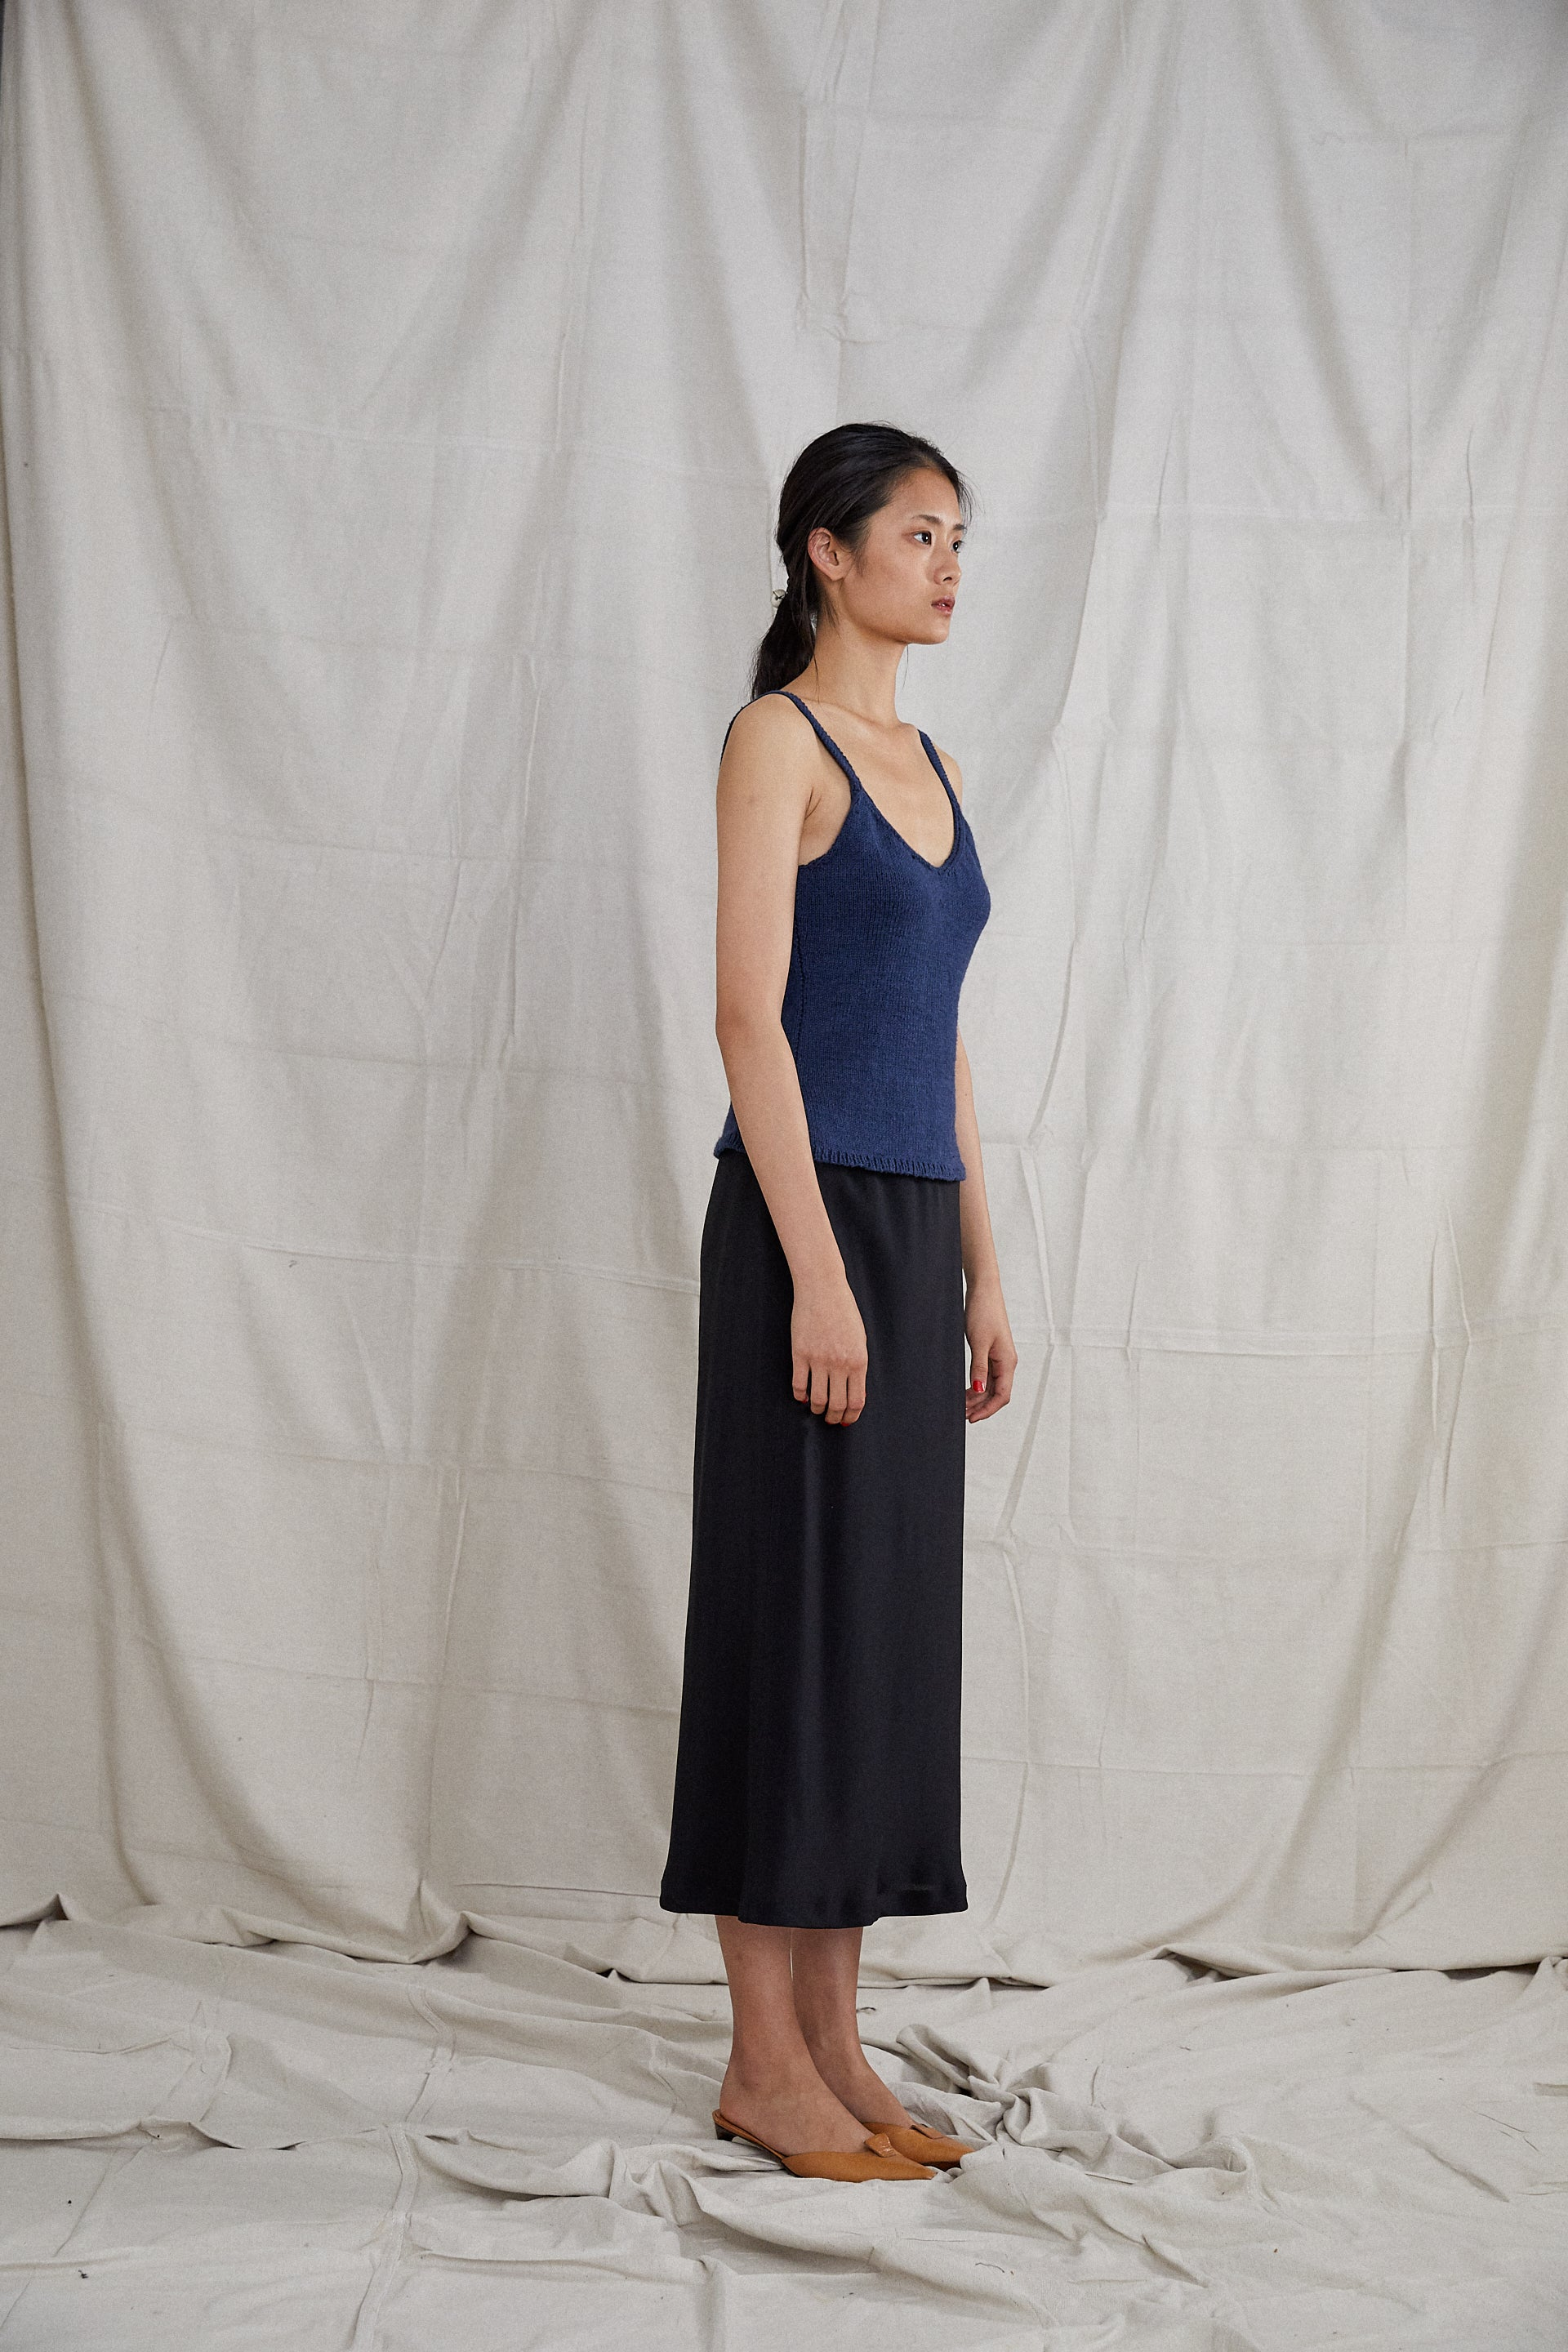 Roshlo Singlet - Indigo Hand Knitted Cotton Silk